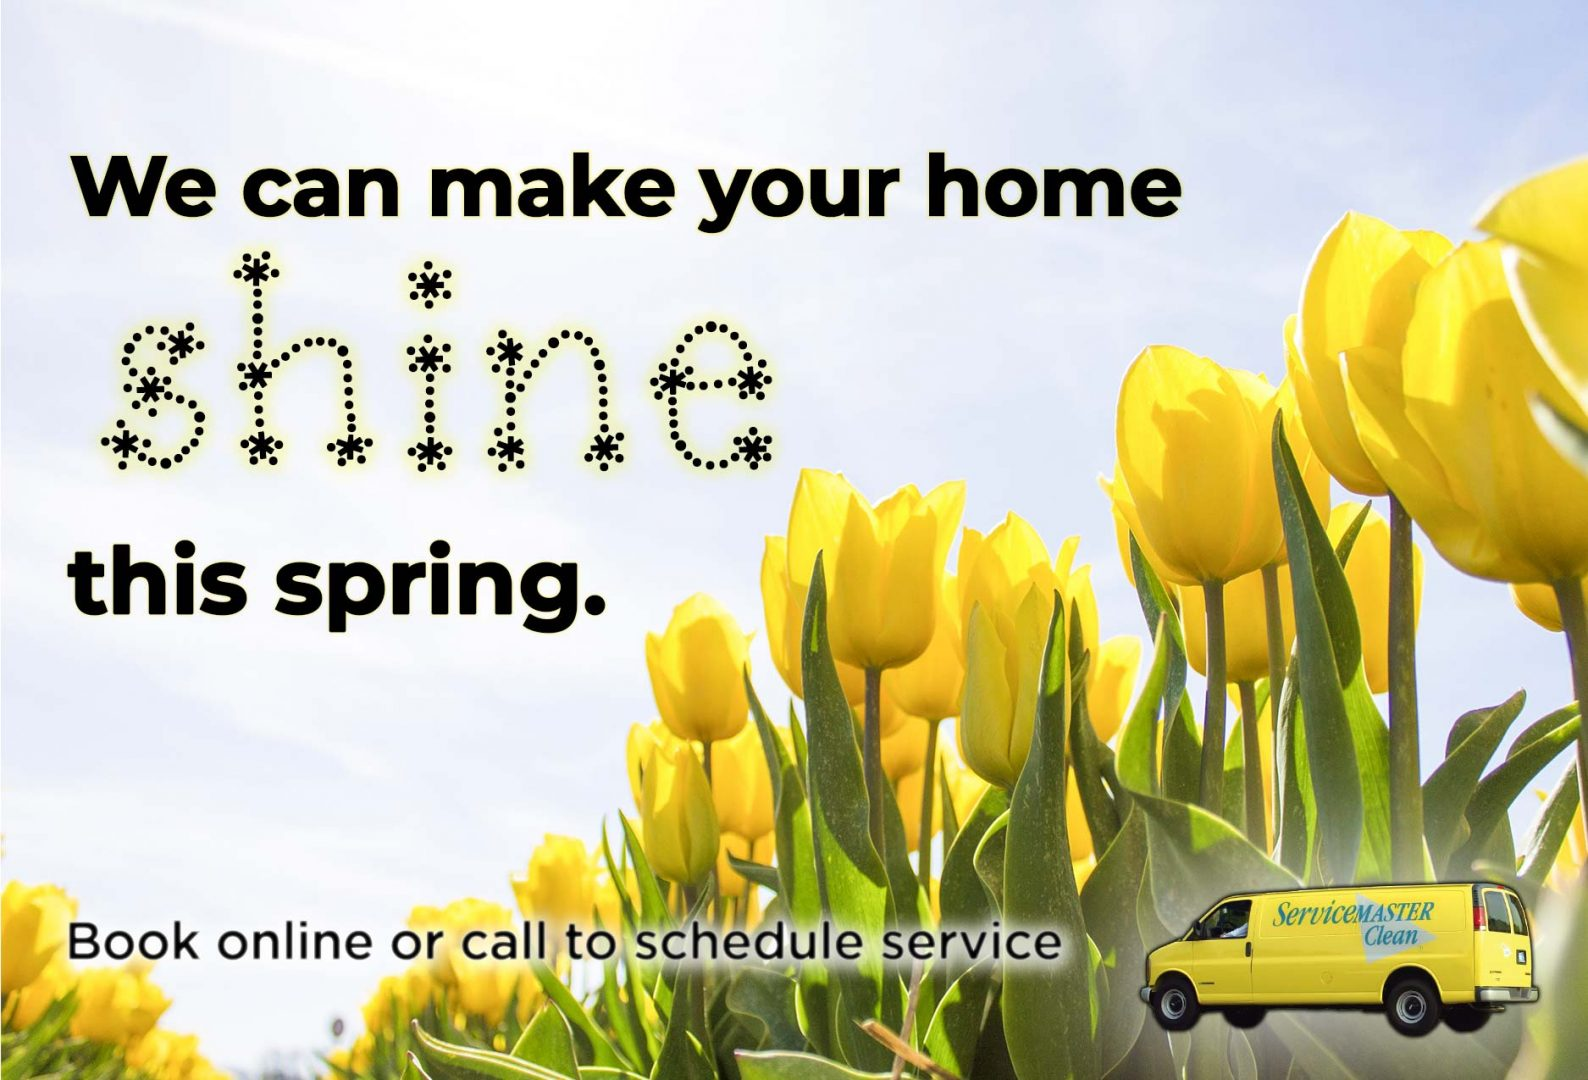 spring cleaning image for cleaning company